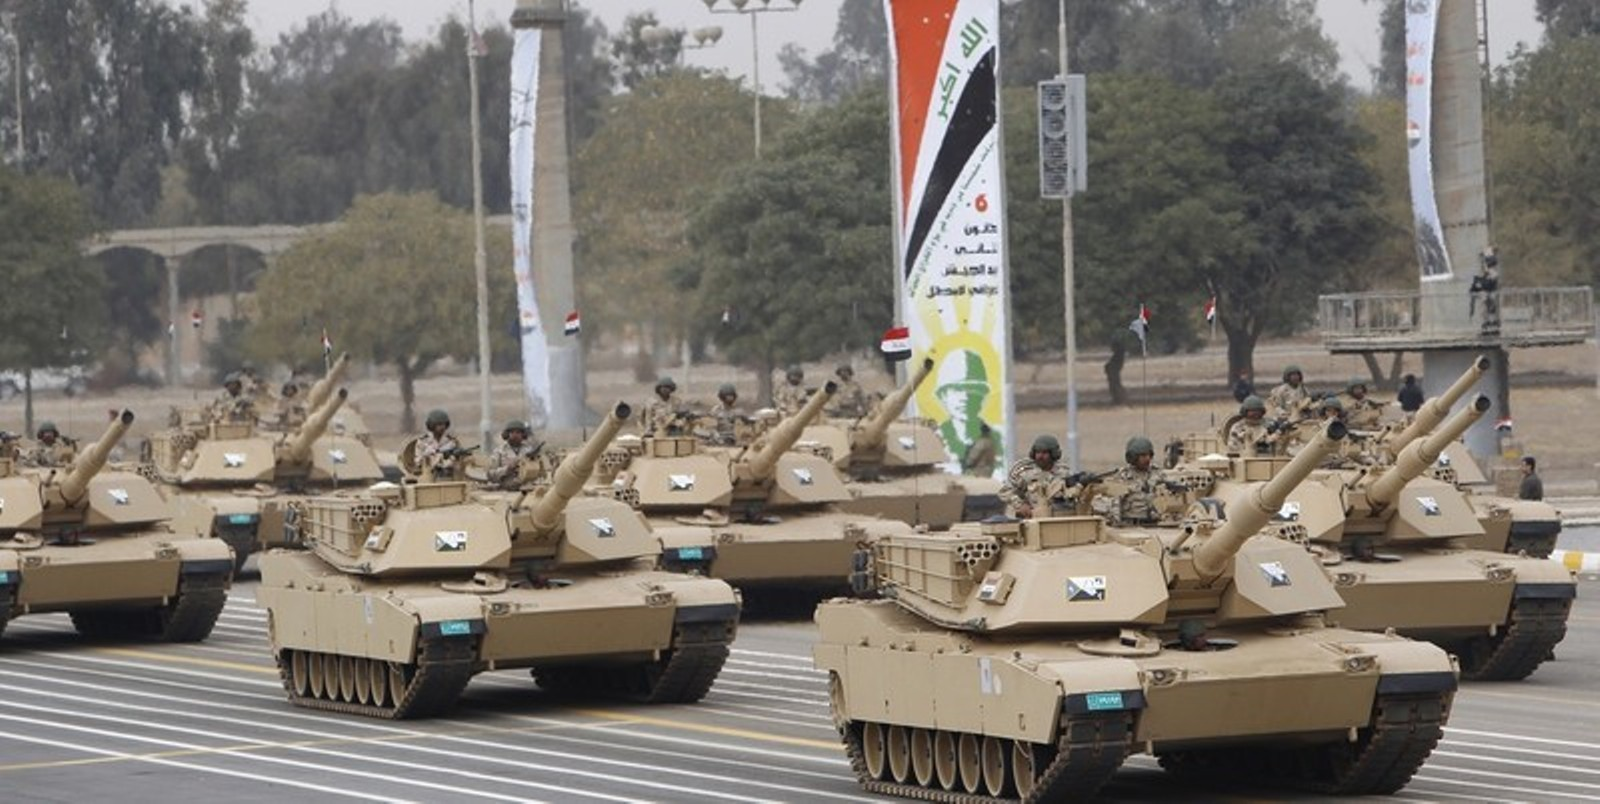 Armée Irakienne Iraqi+Army+soldiers+are+seen+on+M1A1+Abrams+third-generation+main+battle+tank+produced+in+the+United+States+at+the+Monument+of+the+Unknown+Soldier+during+the+Army+Day+celebrations+in+Baghdad%252C+%25282%2529